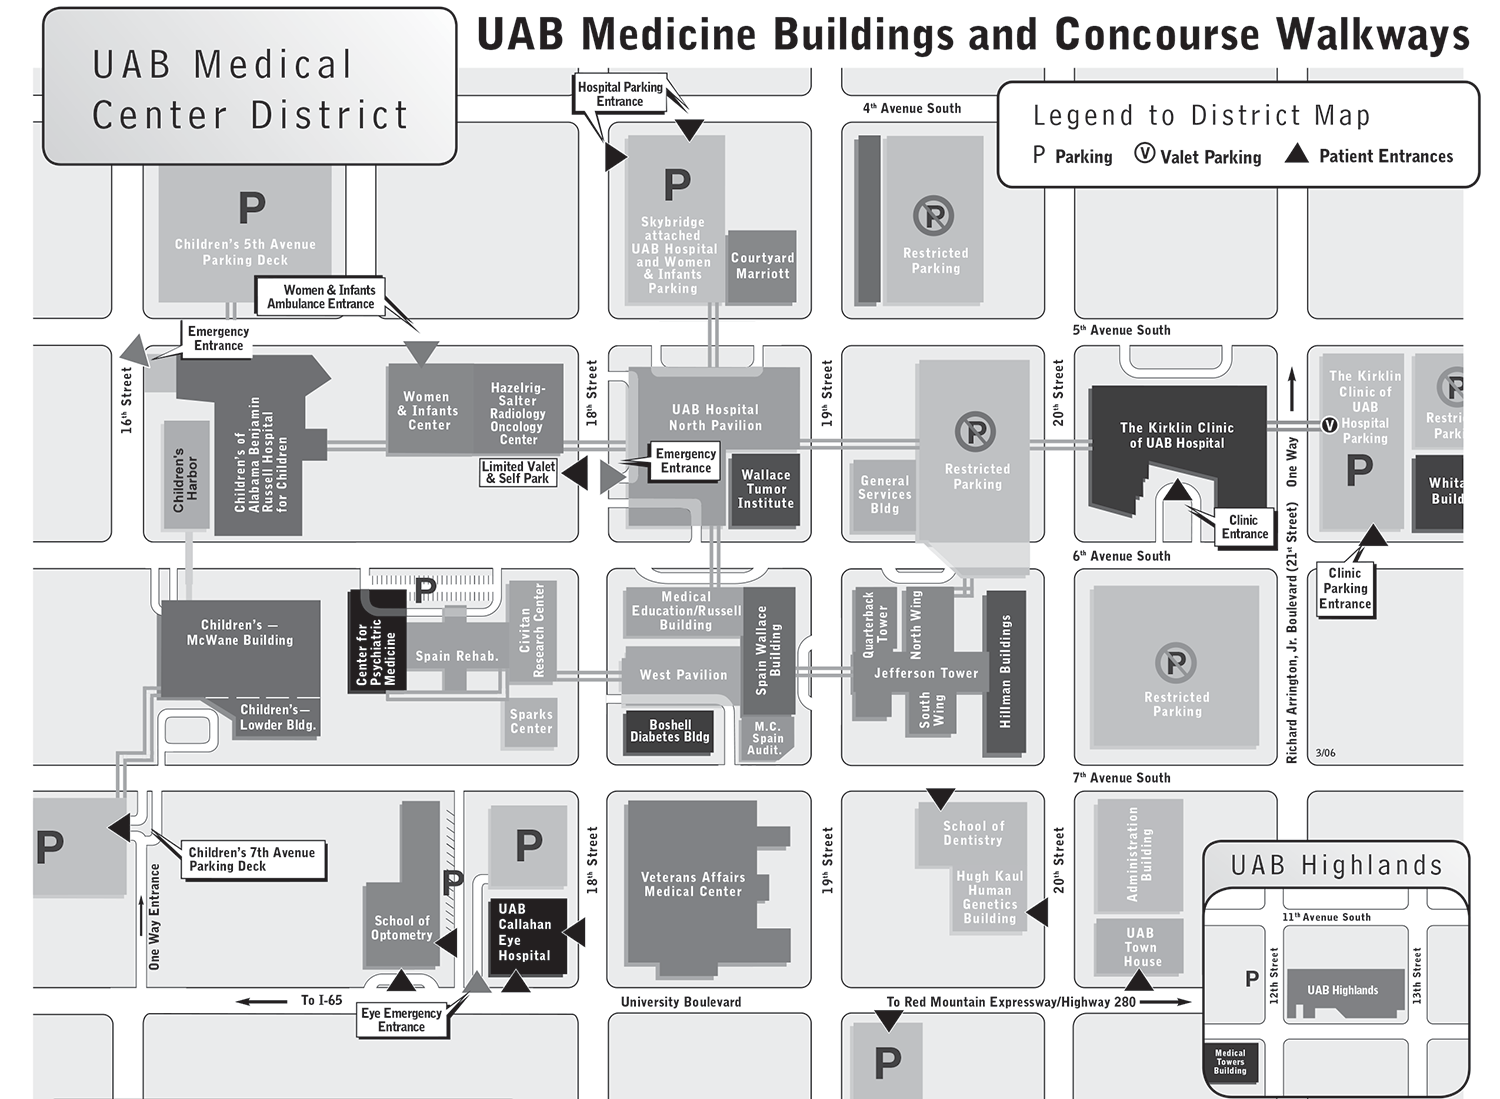 For hospitals: Don't get lost on your way to better wayfinding